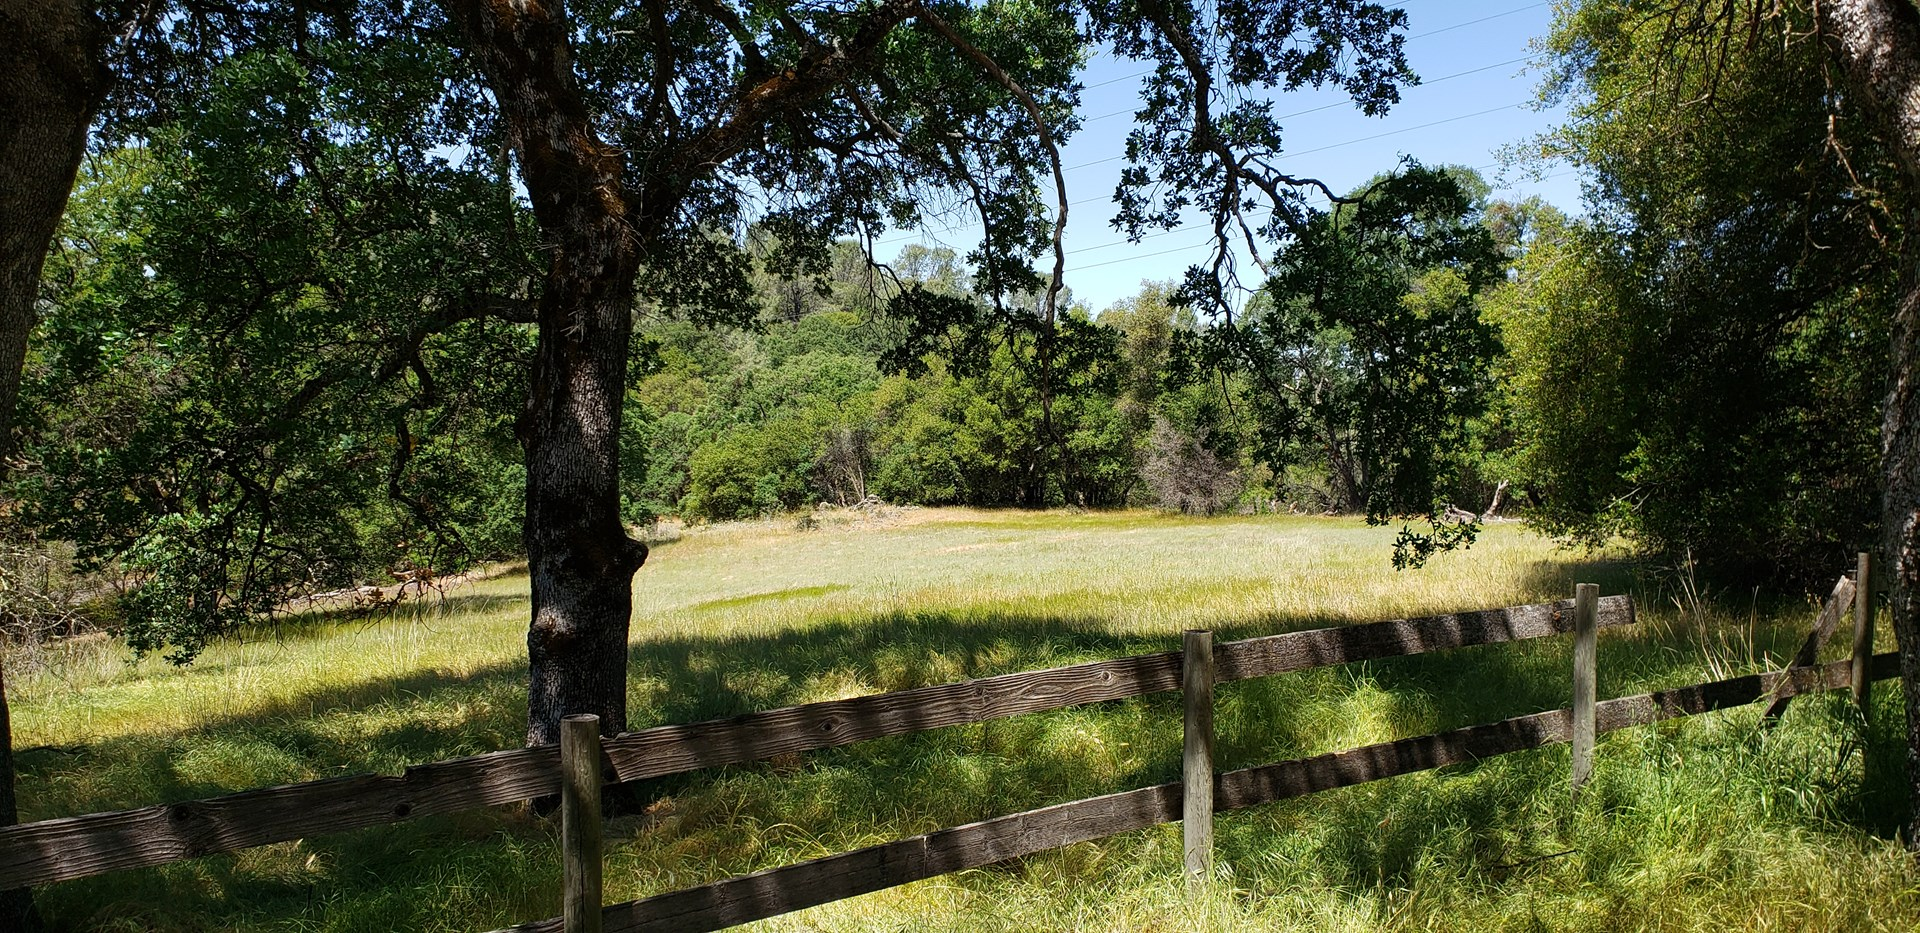 Horse Property for Sale in Northern California